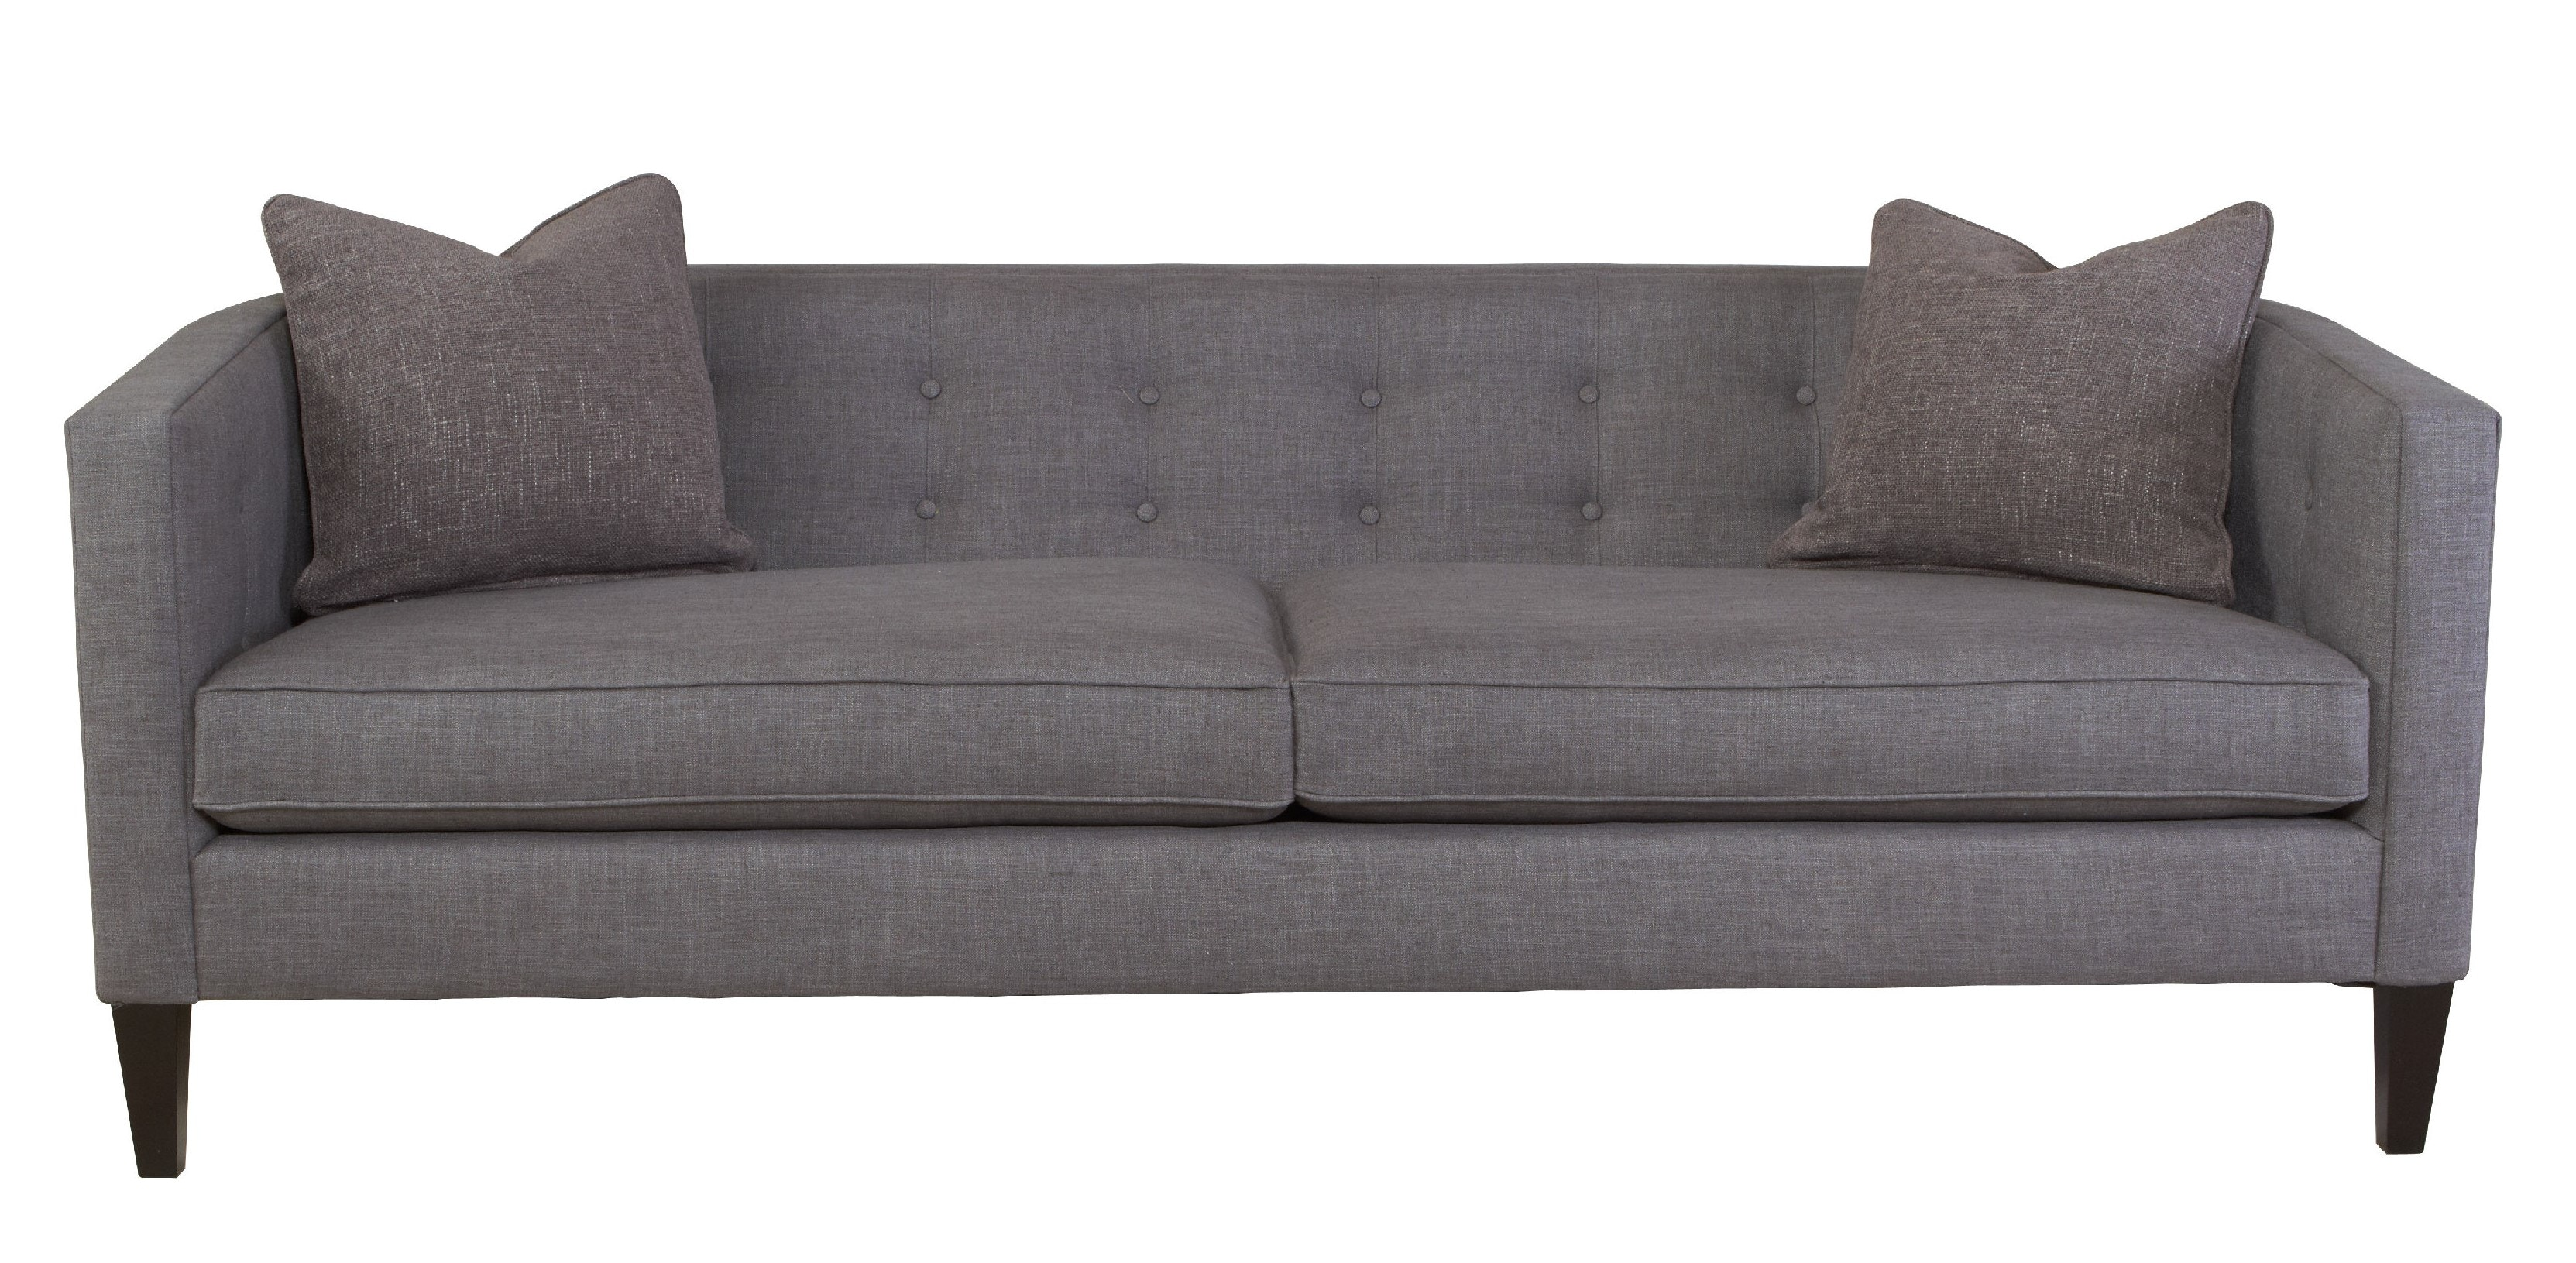 Southern Furniture Josie Sofa 20991